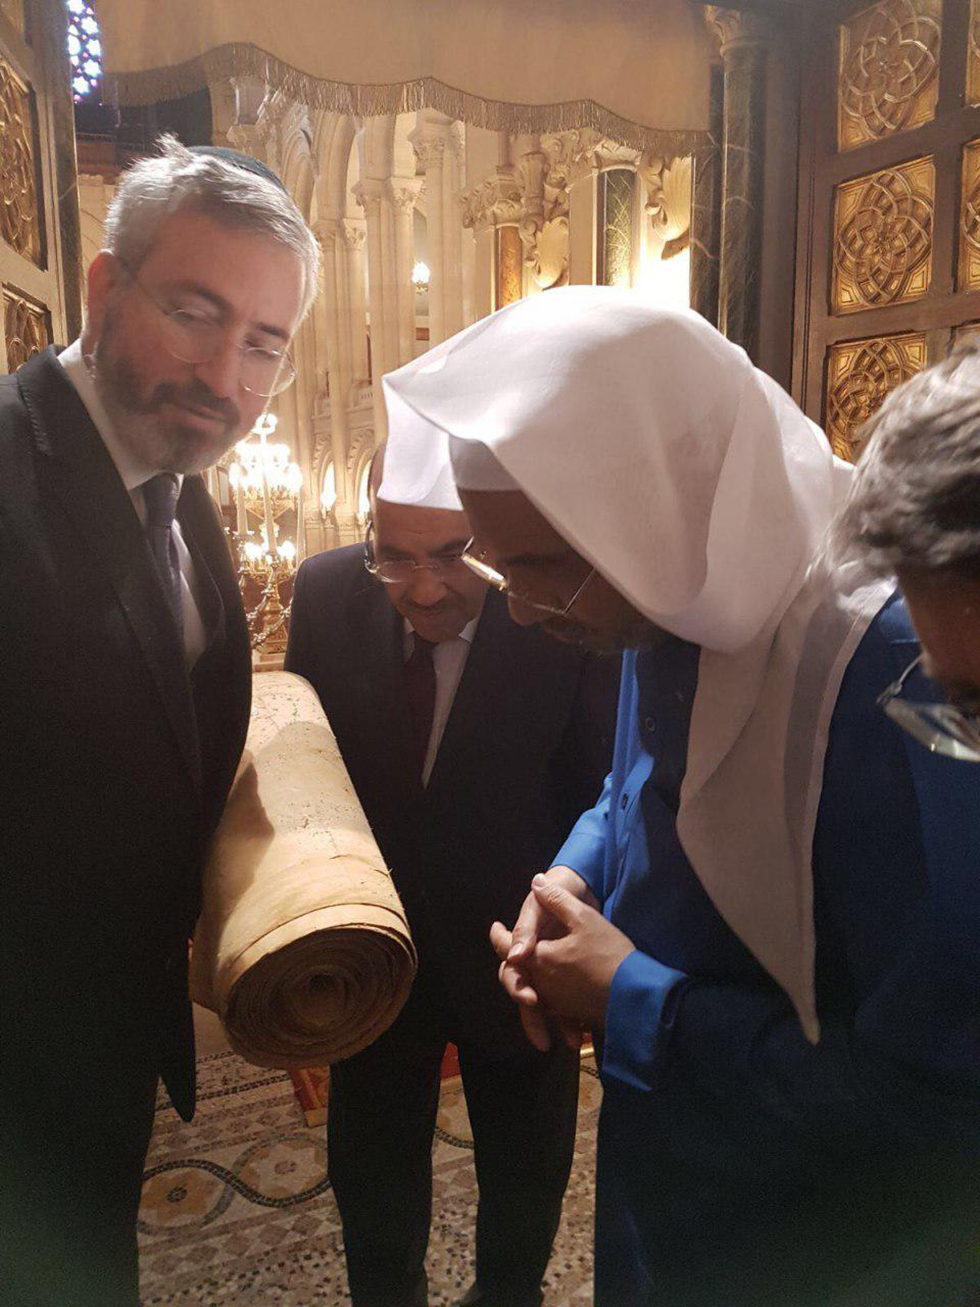 Rabbi Sabag showing the Saudi officials the 200-year-old Torah scroll